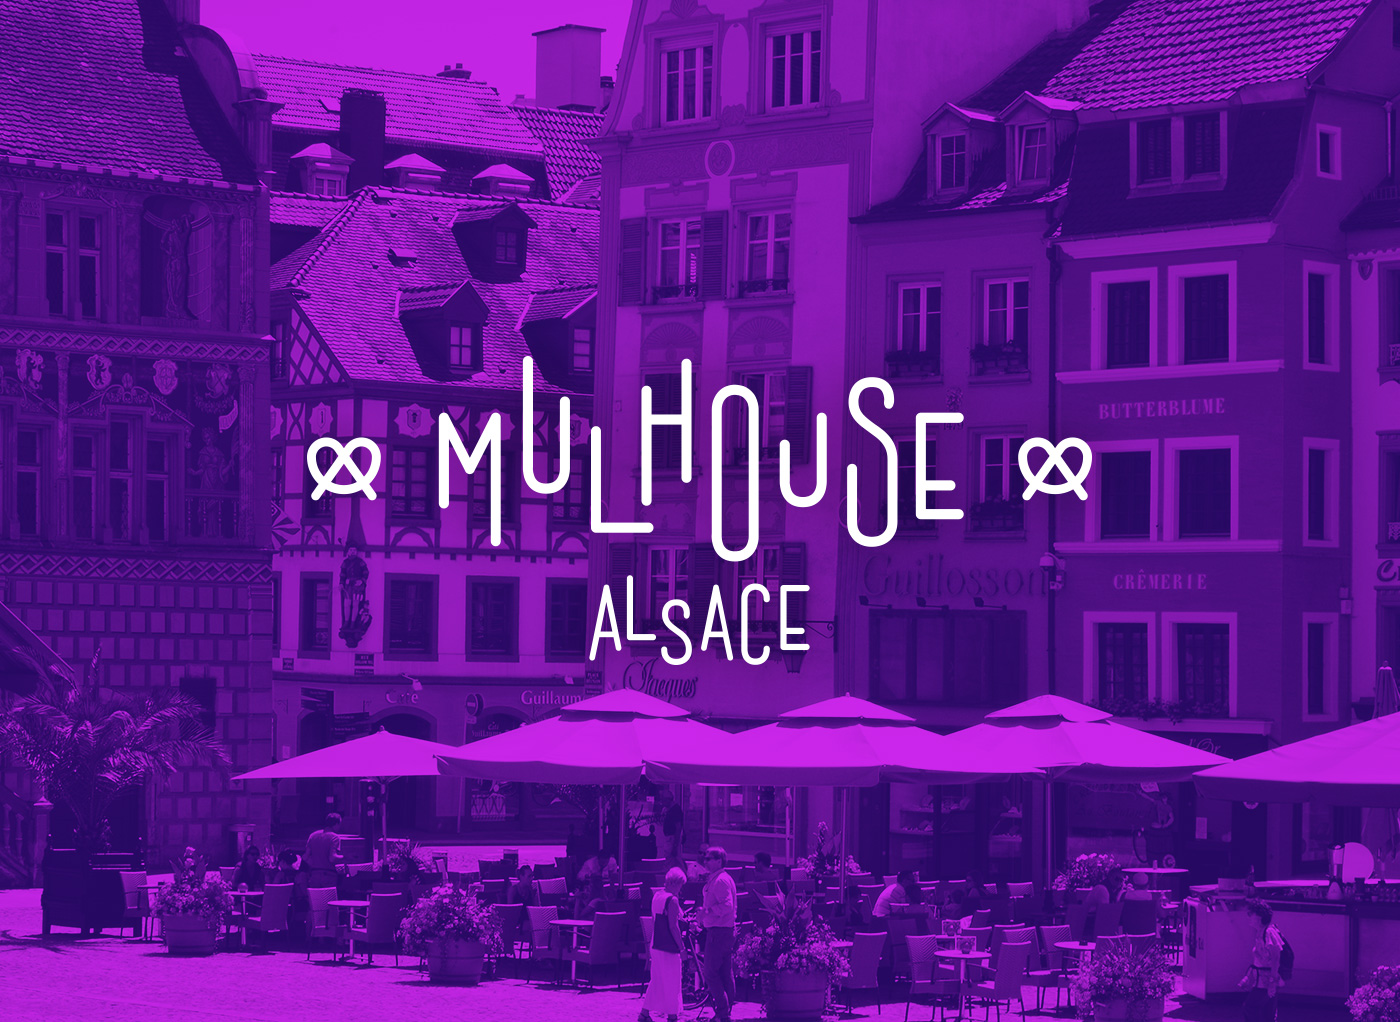 Type design for Mulhouse Alsace